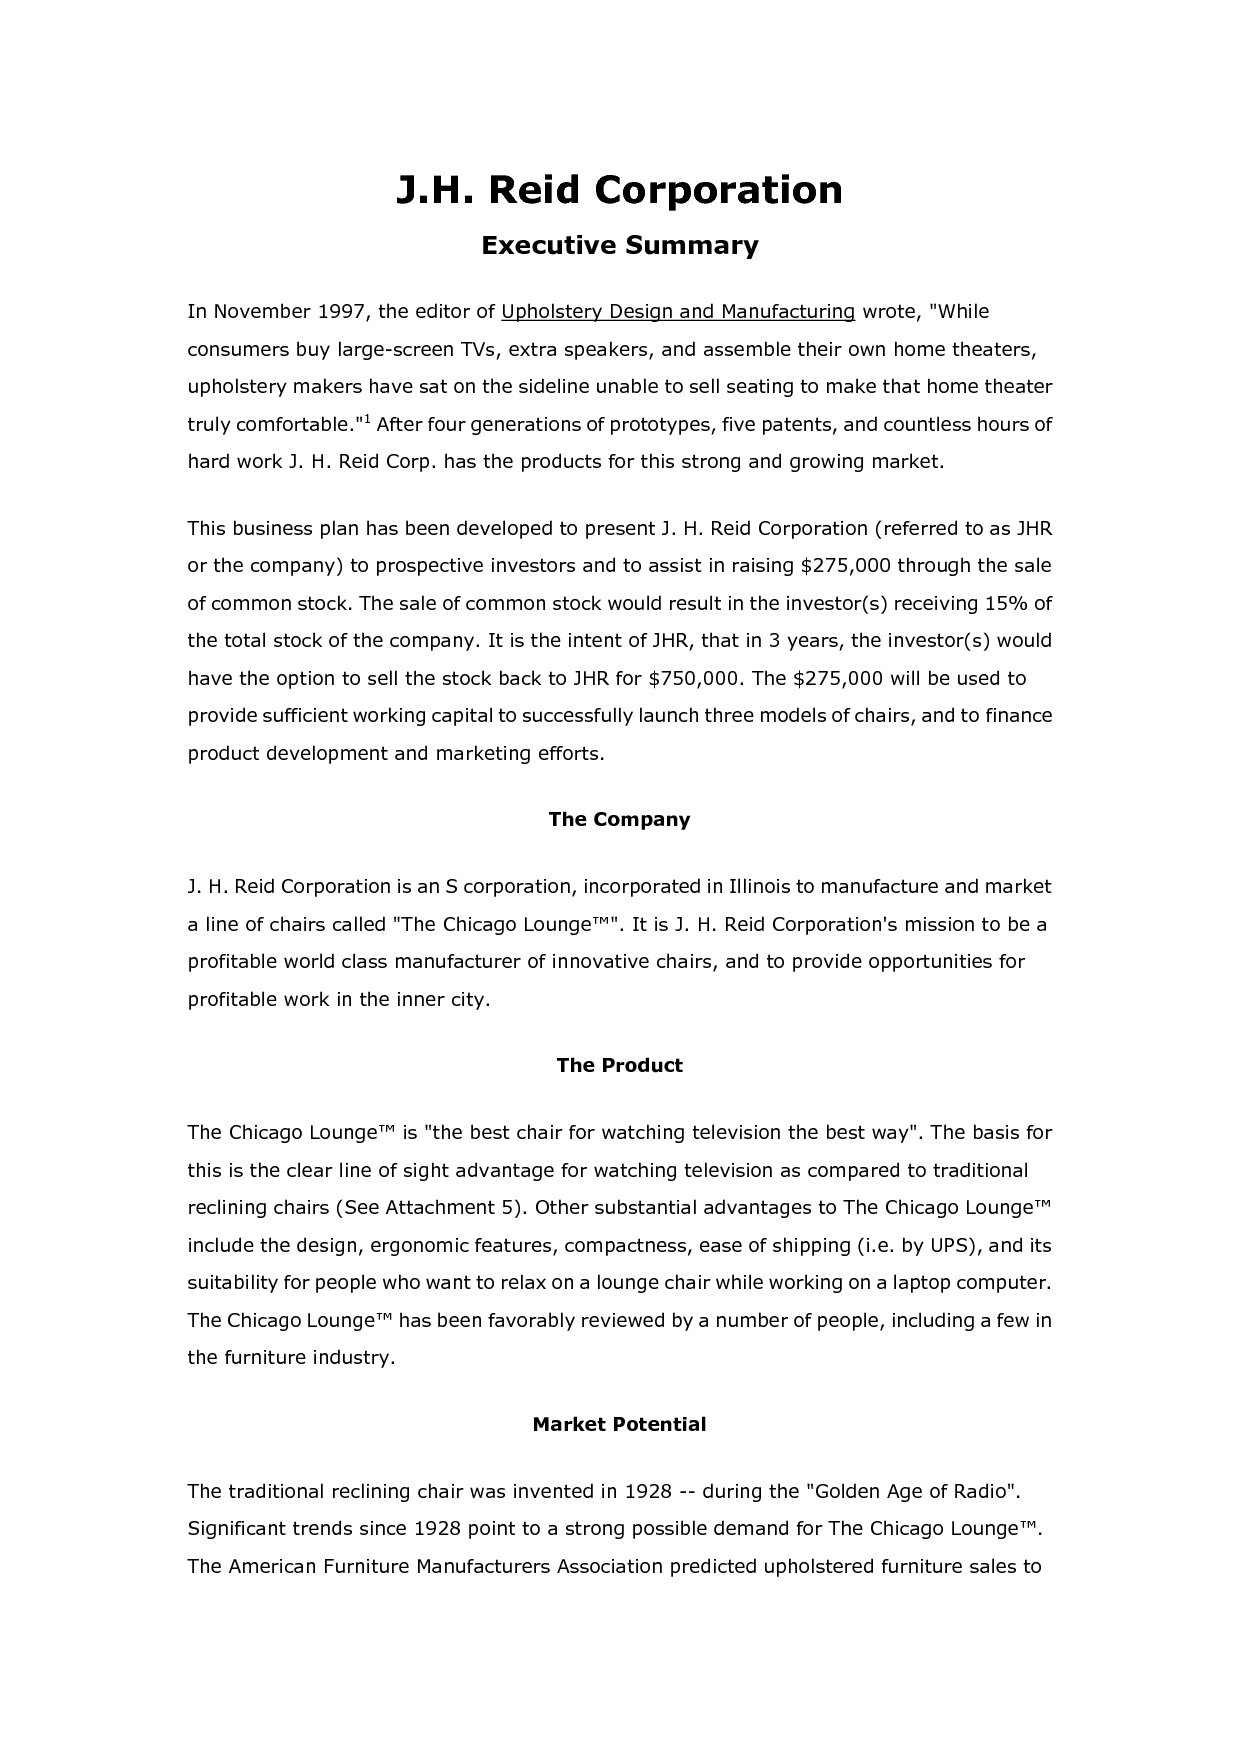 globalization business essay format